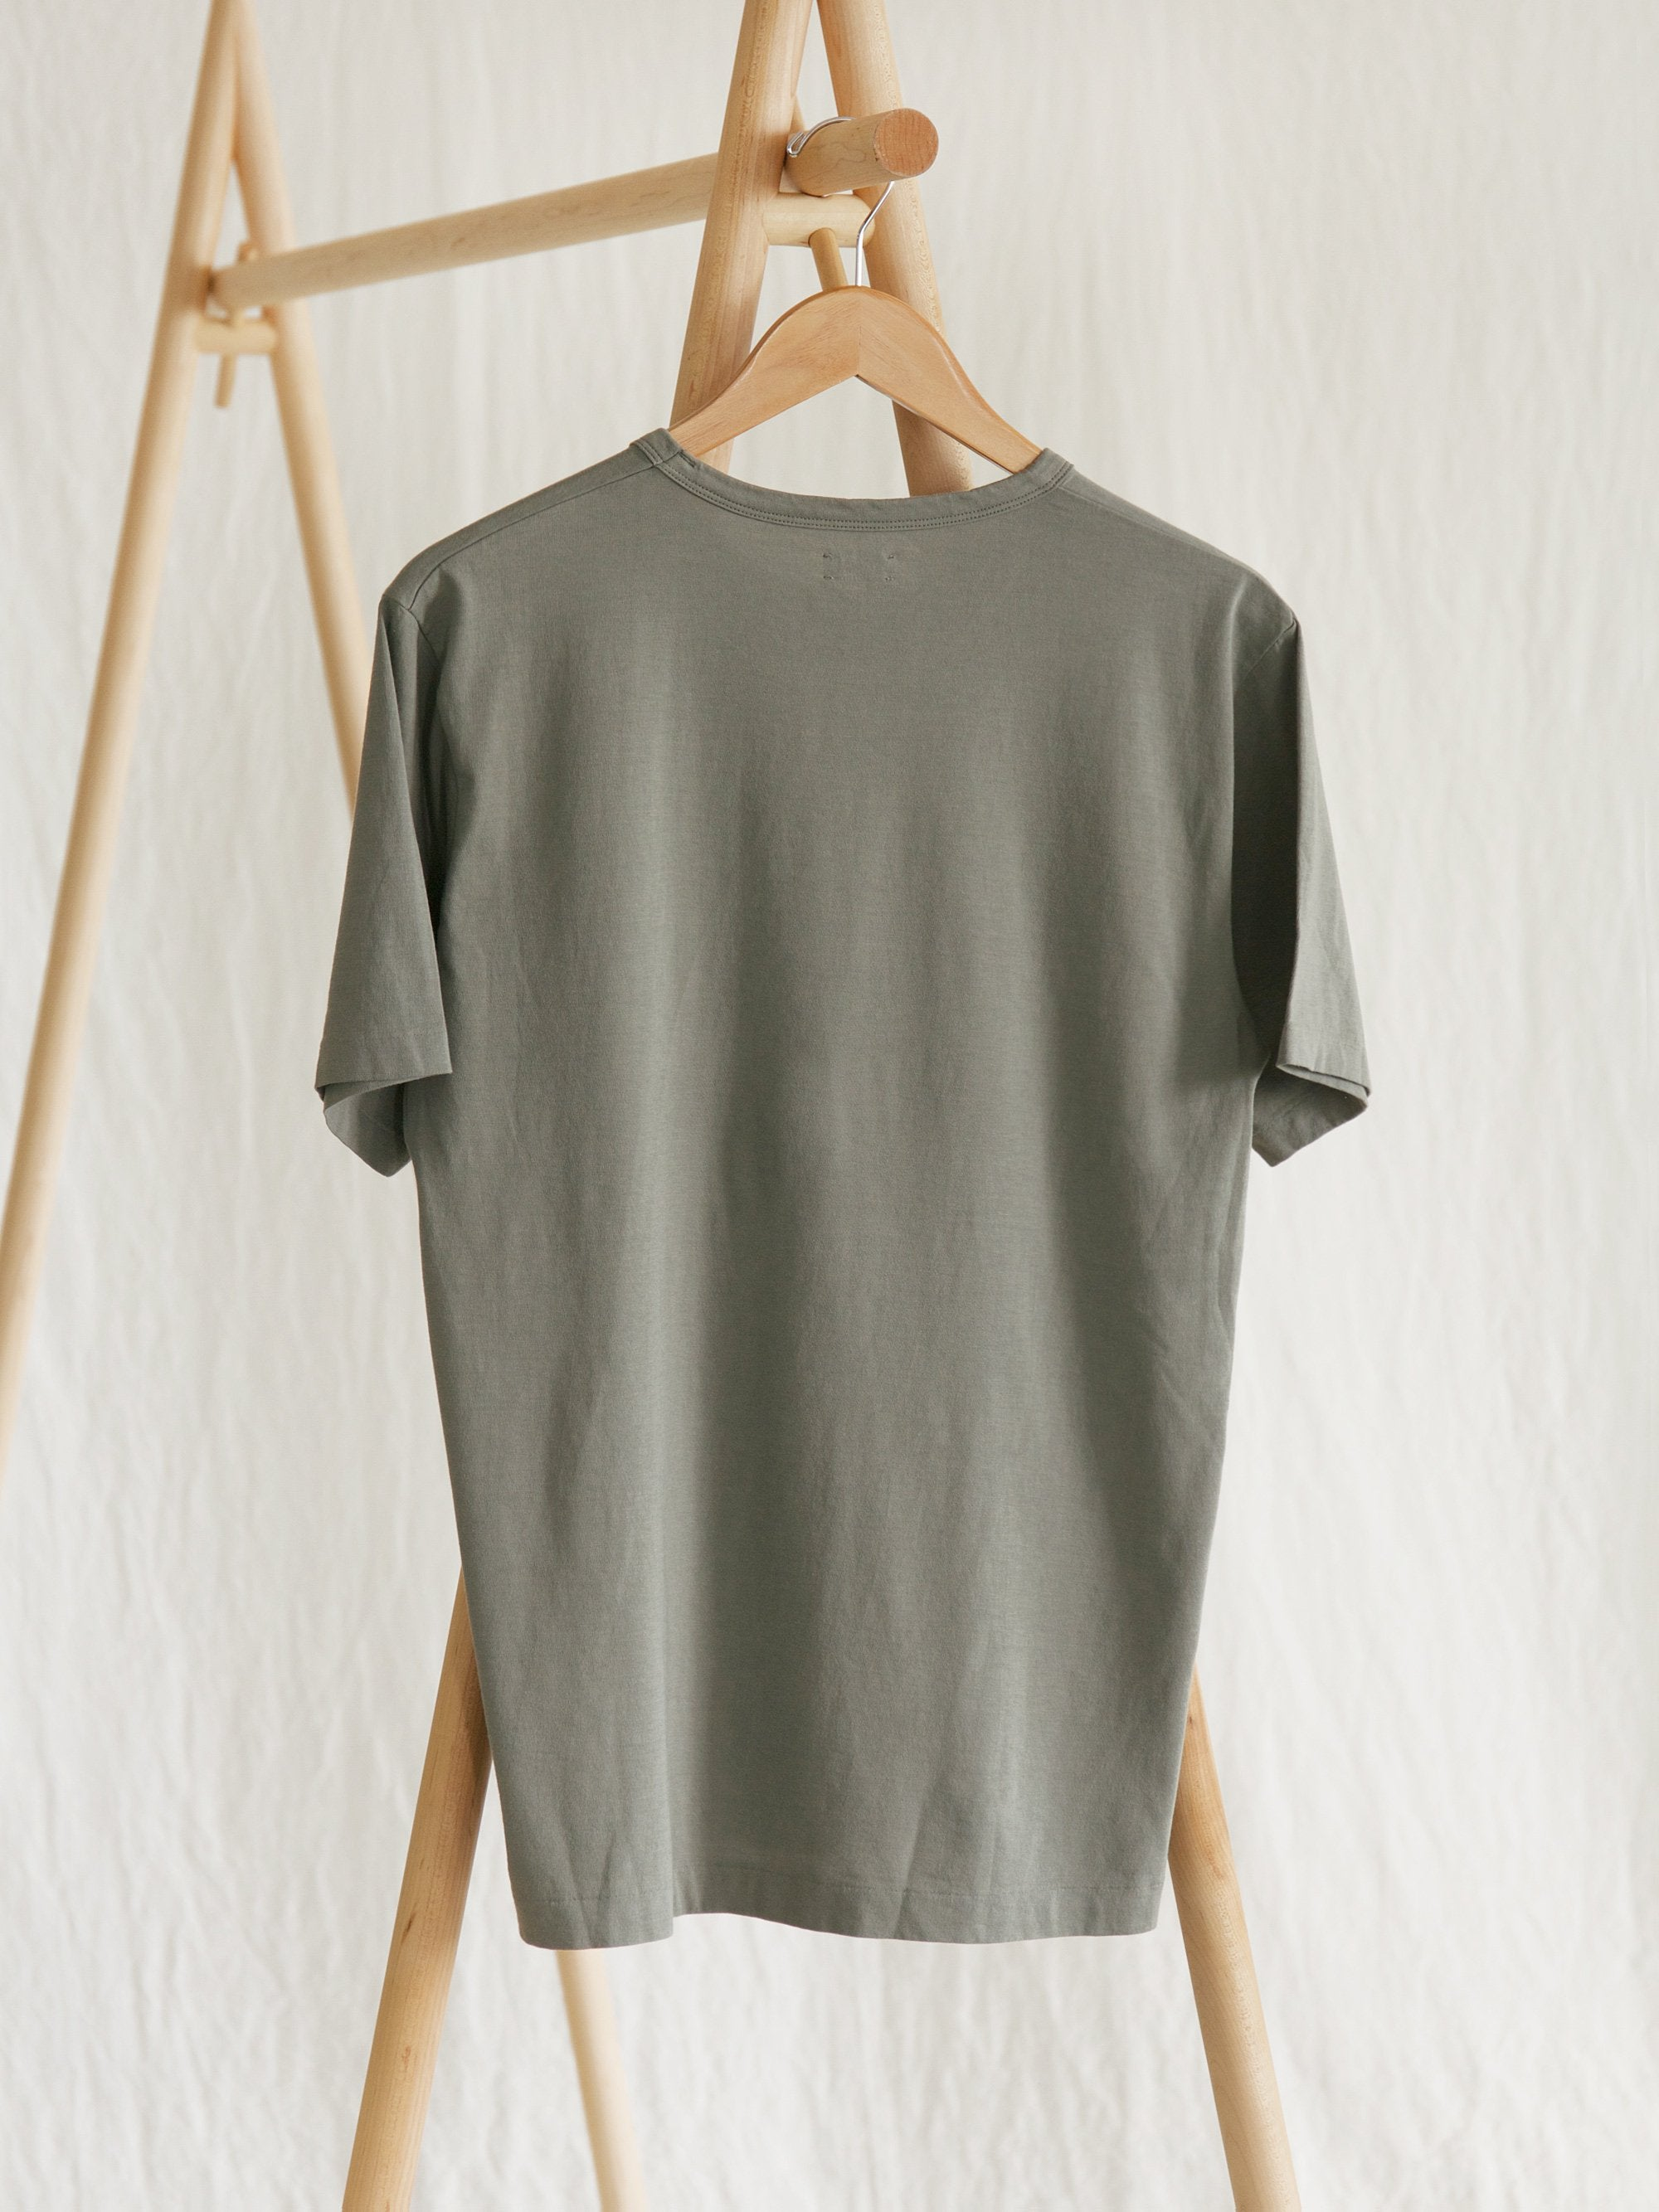 Namu Shop - Phlannel Light Suvin Cotton T-Shirt - Leaf Green (Women's)